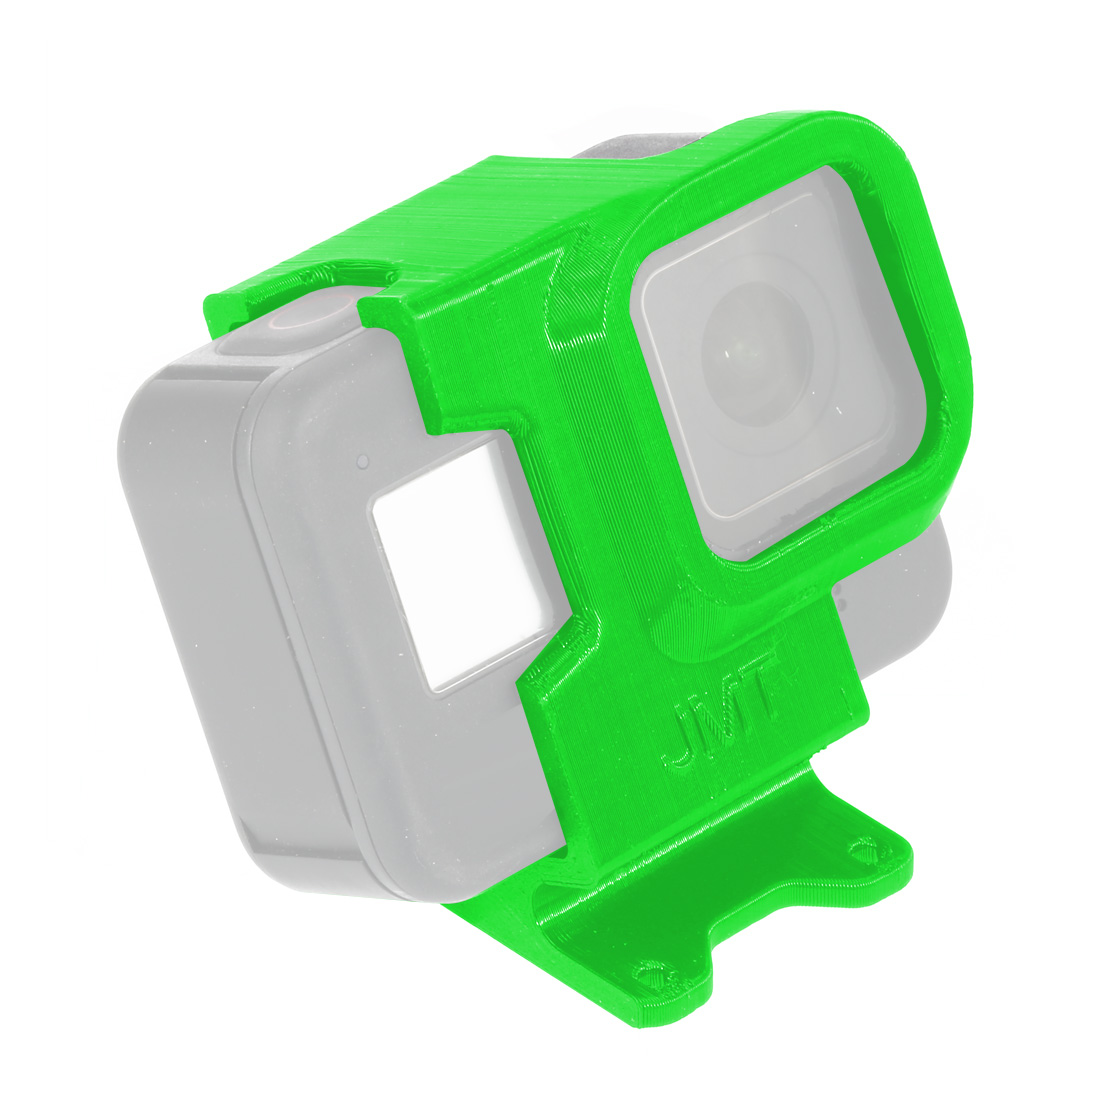 JMT 3D Printed Camera Holder TPU Protector For IFlight XL/XL Low/DC5/SL5 Series FPV Racing Drone For Gopro Hero 8 Action Camera